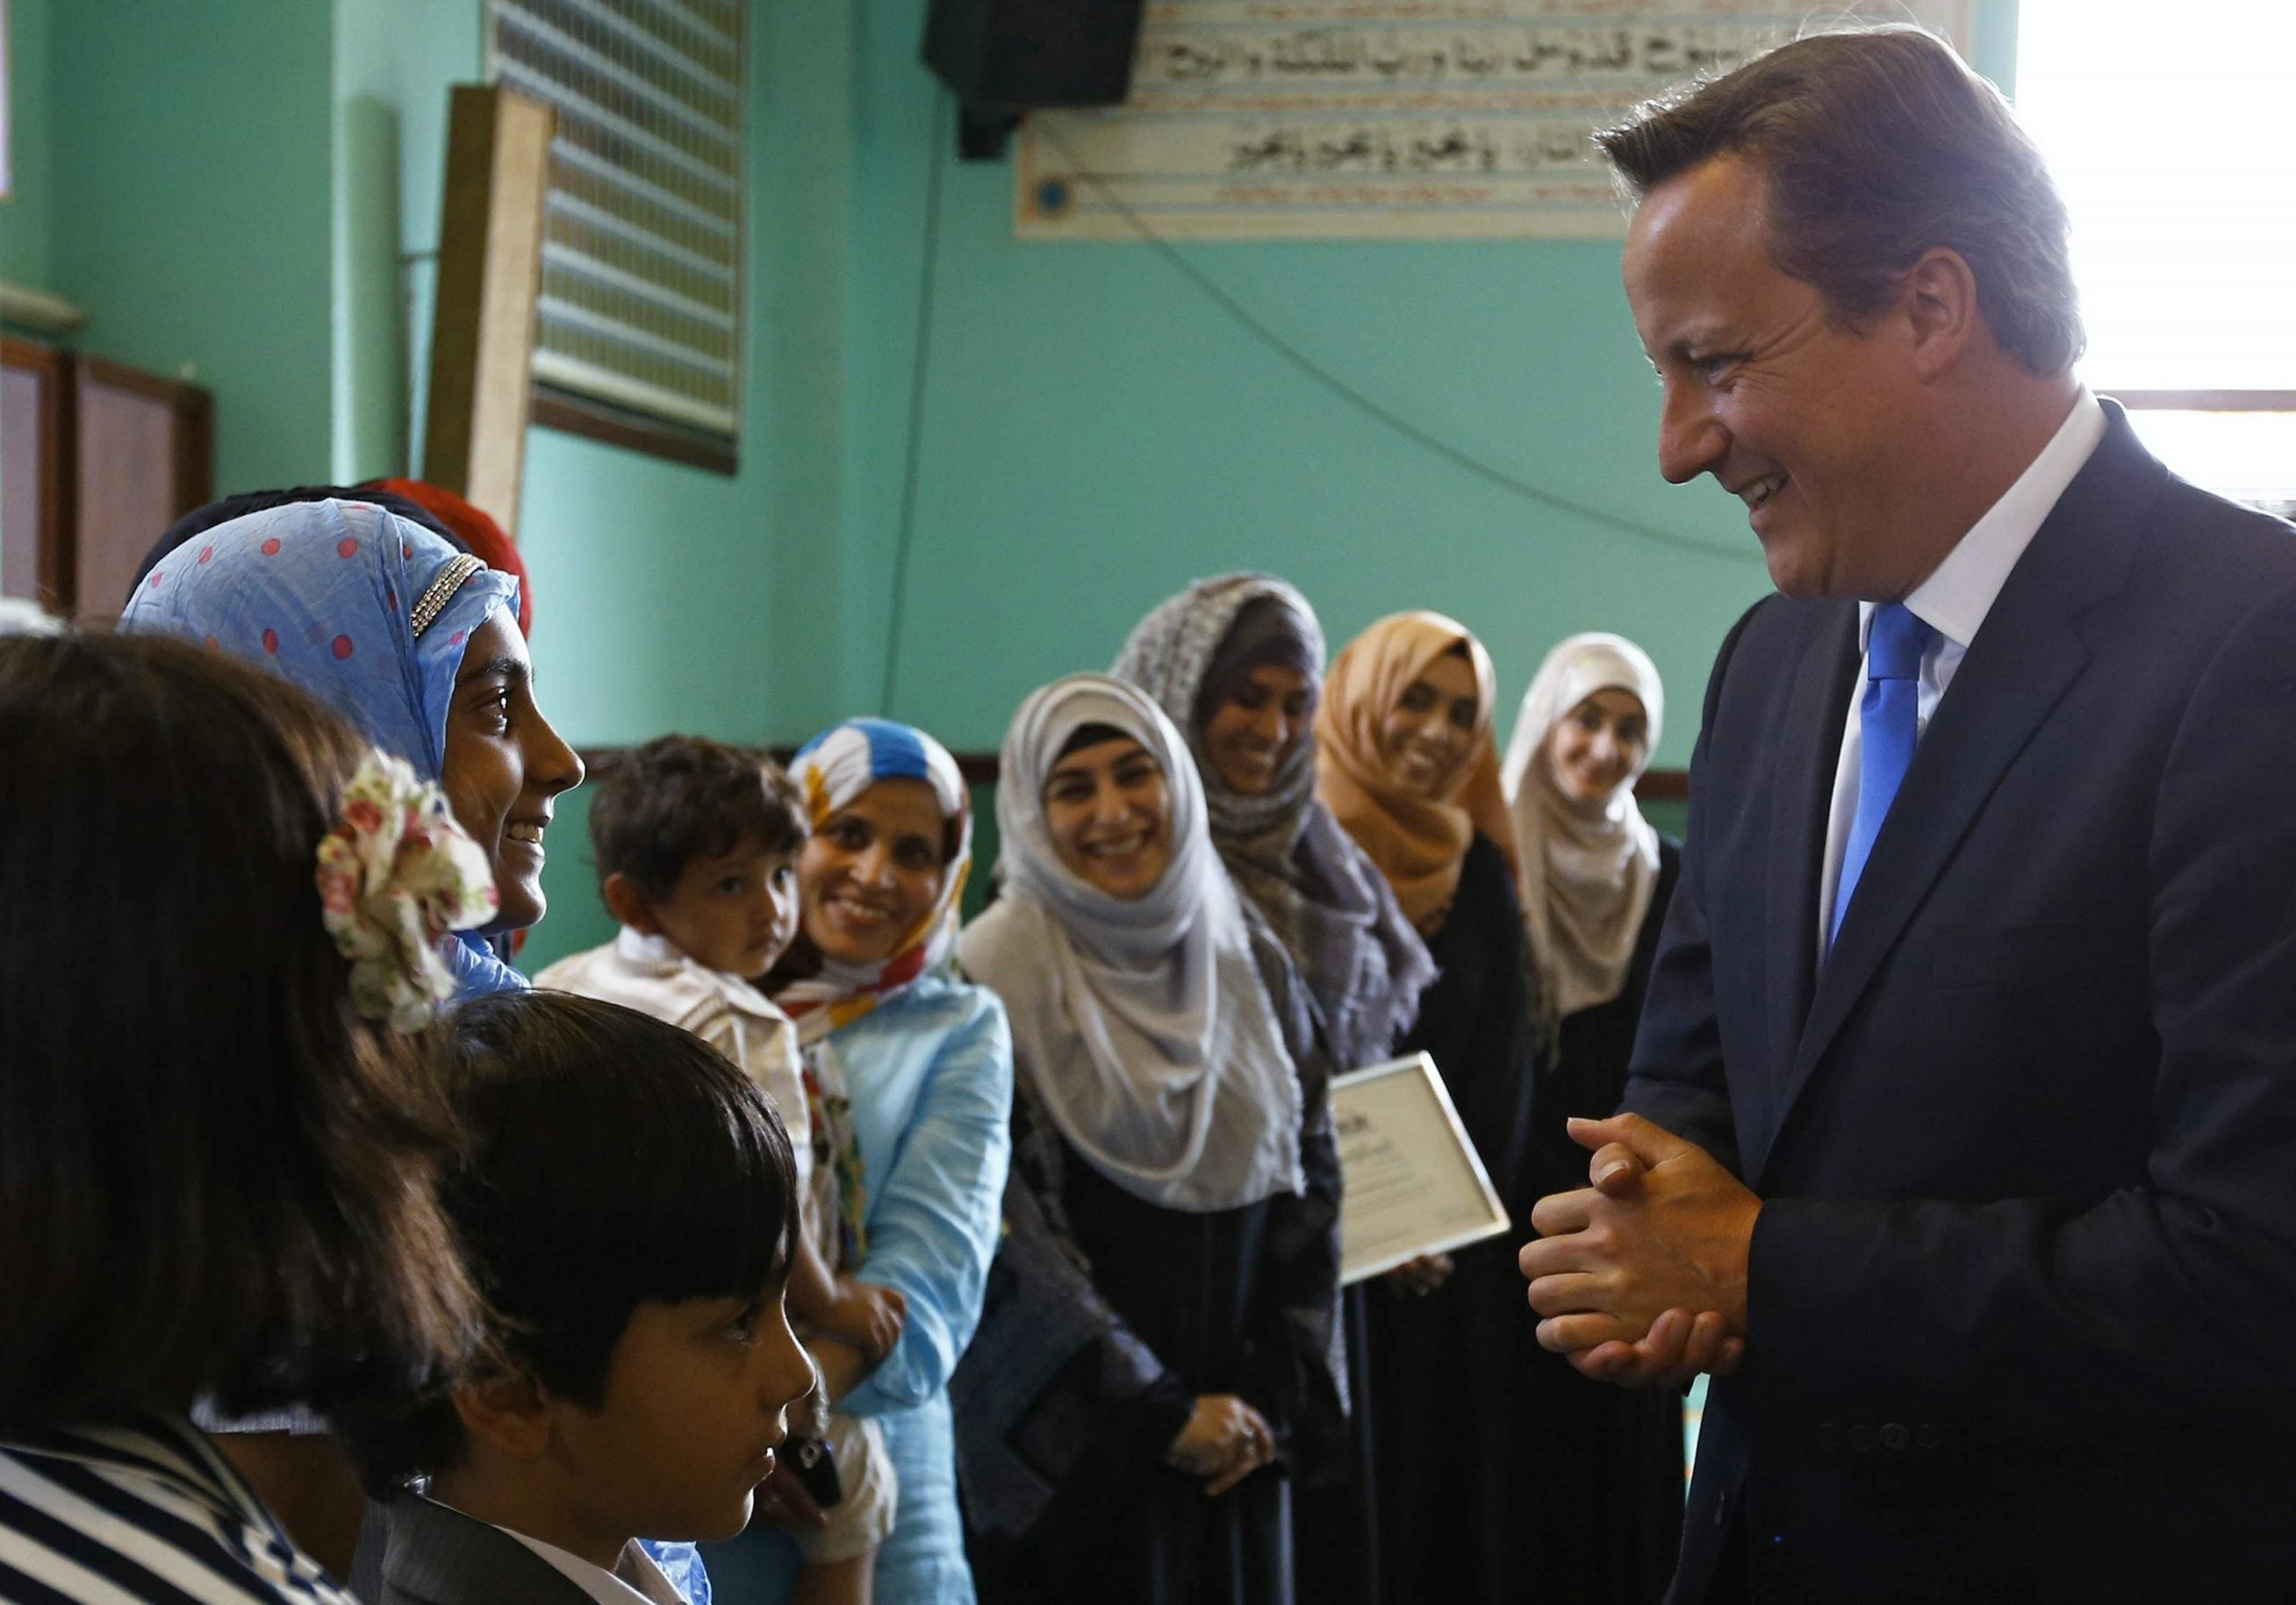 Why is David Cameron using British Muslims as the scapegoat for his government's failings?